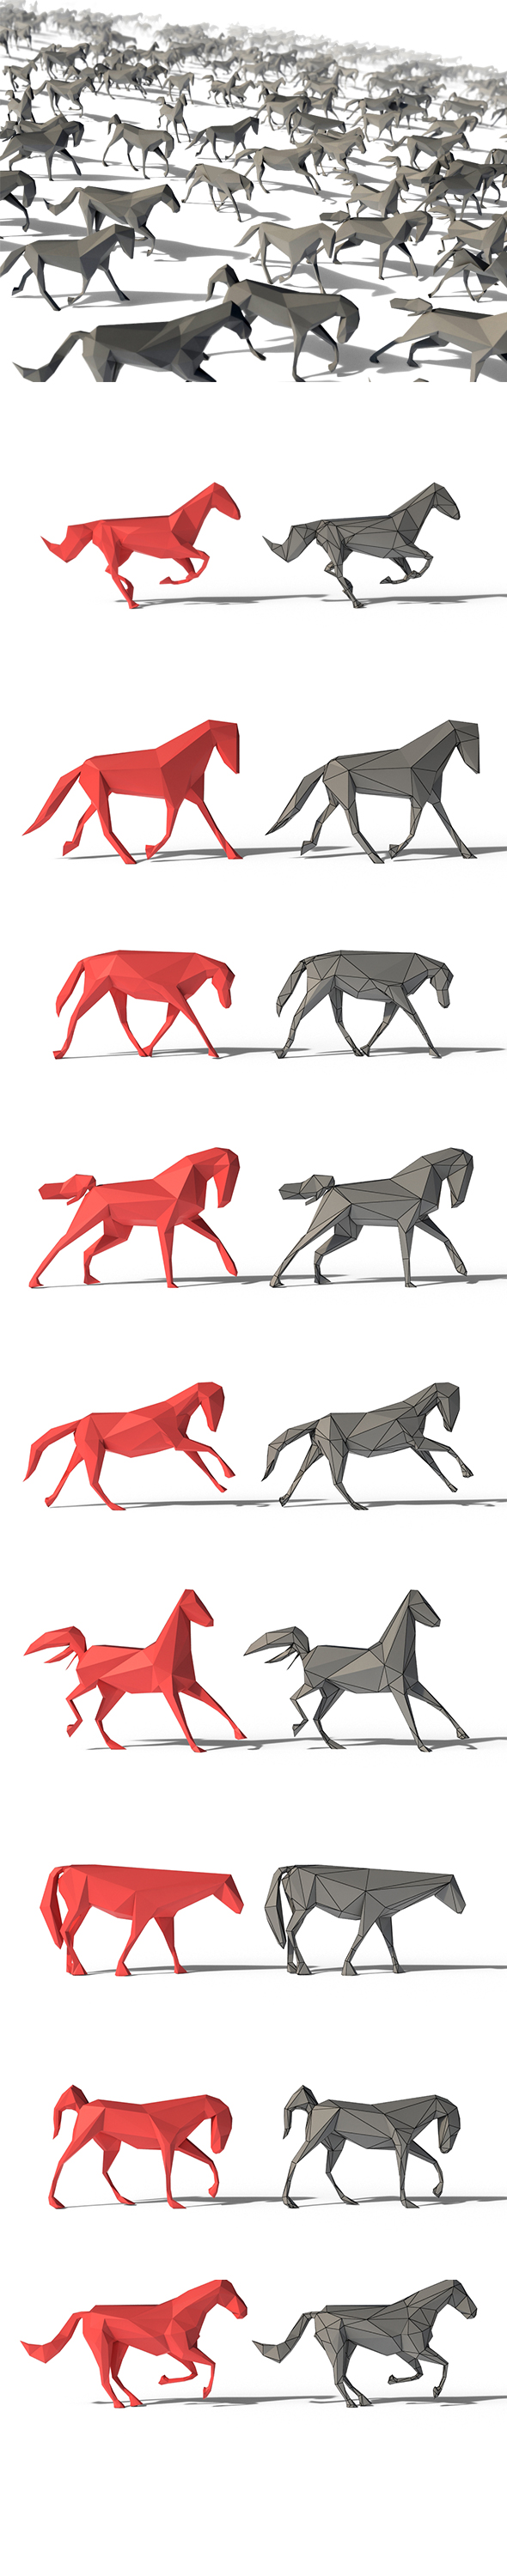 Low Poly Horses Pack - 3DOcean Item for Sale